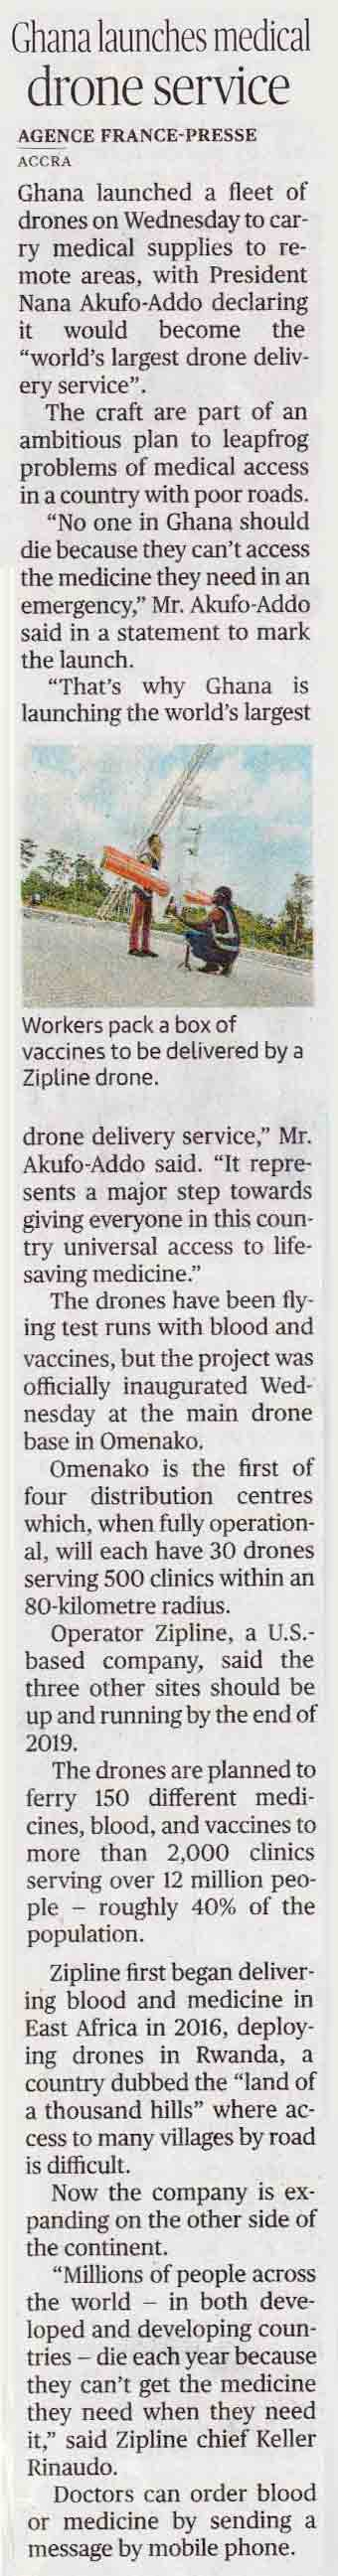 Ghana launches medical drone service